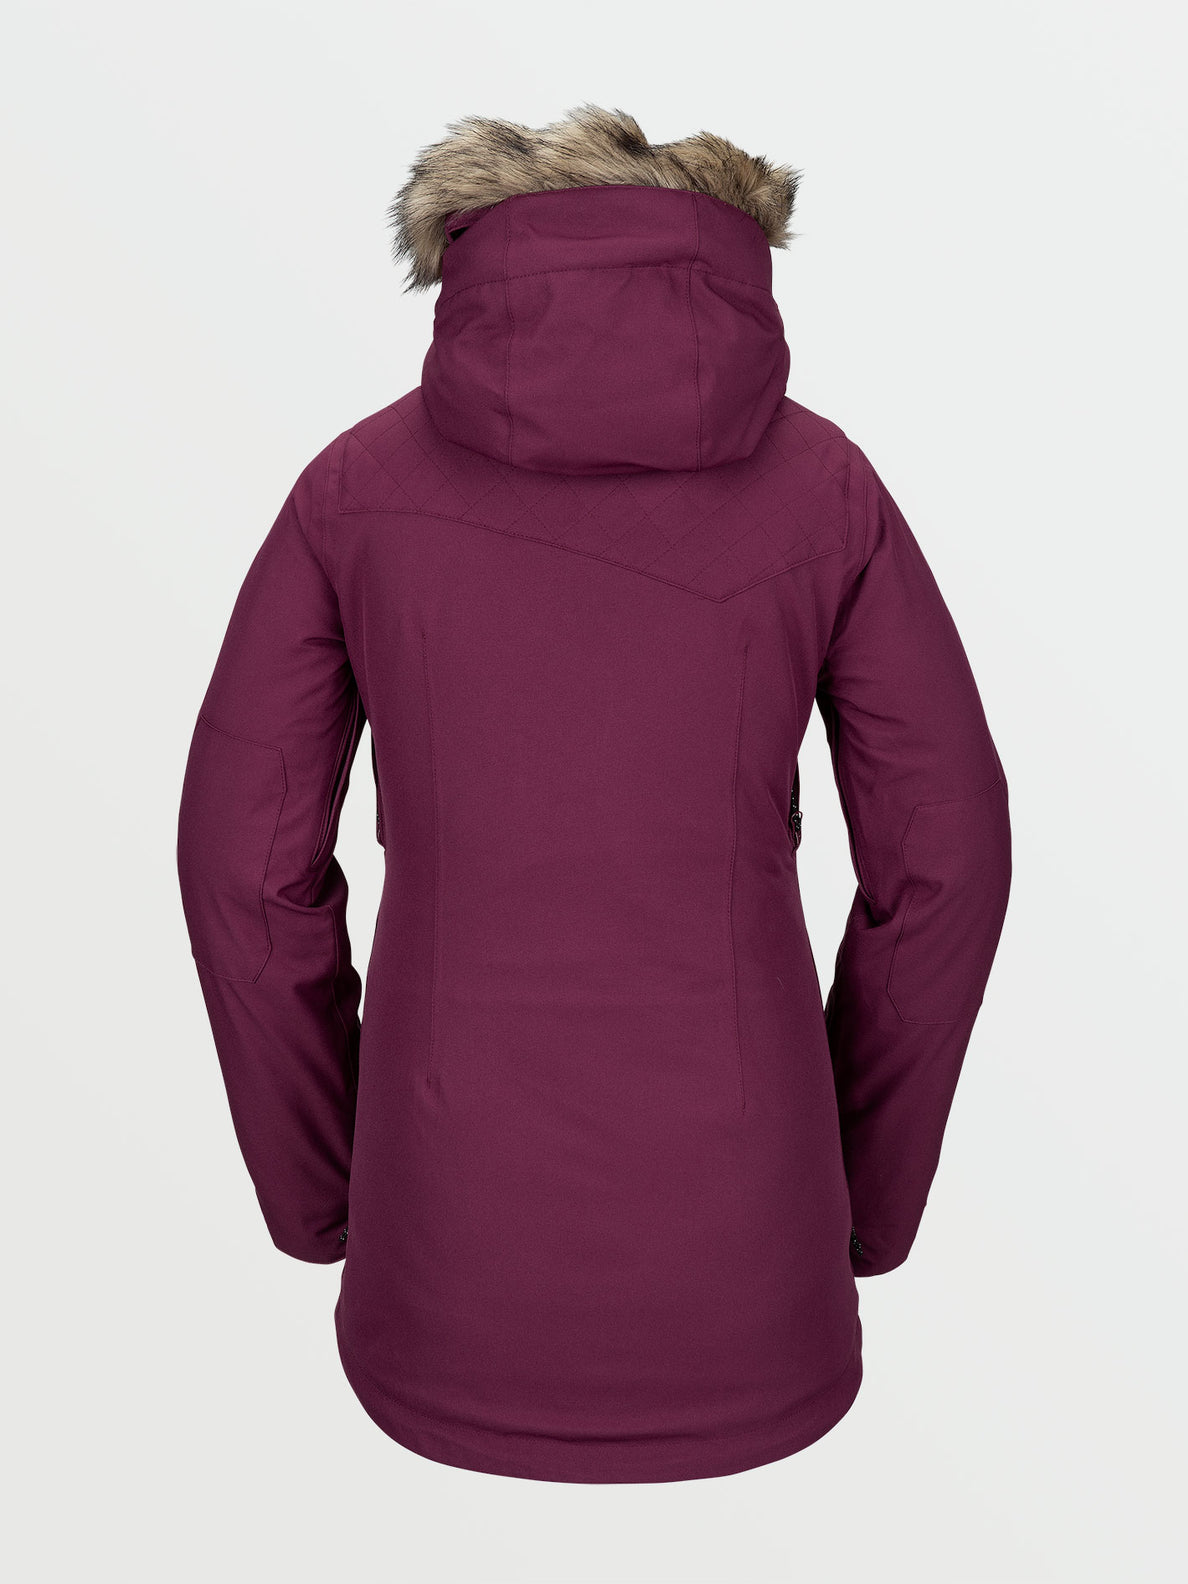 Womens Shadow Insulated Jacket - Vibrant Purple (H0451913_VIB) [B]